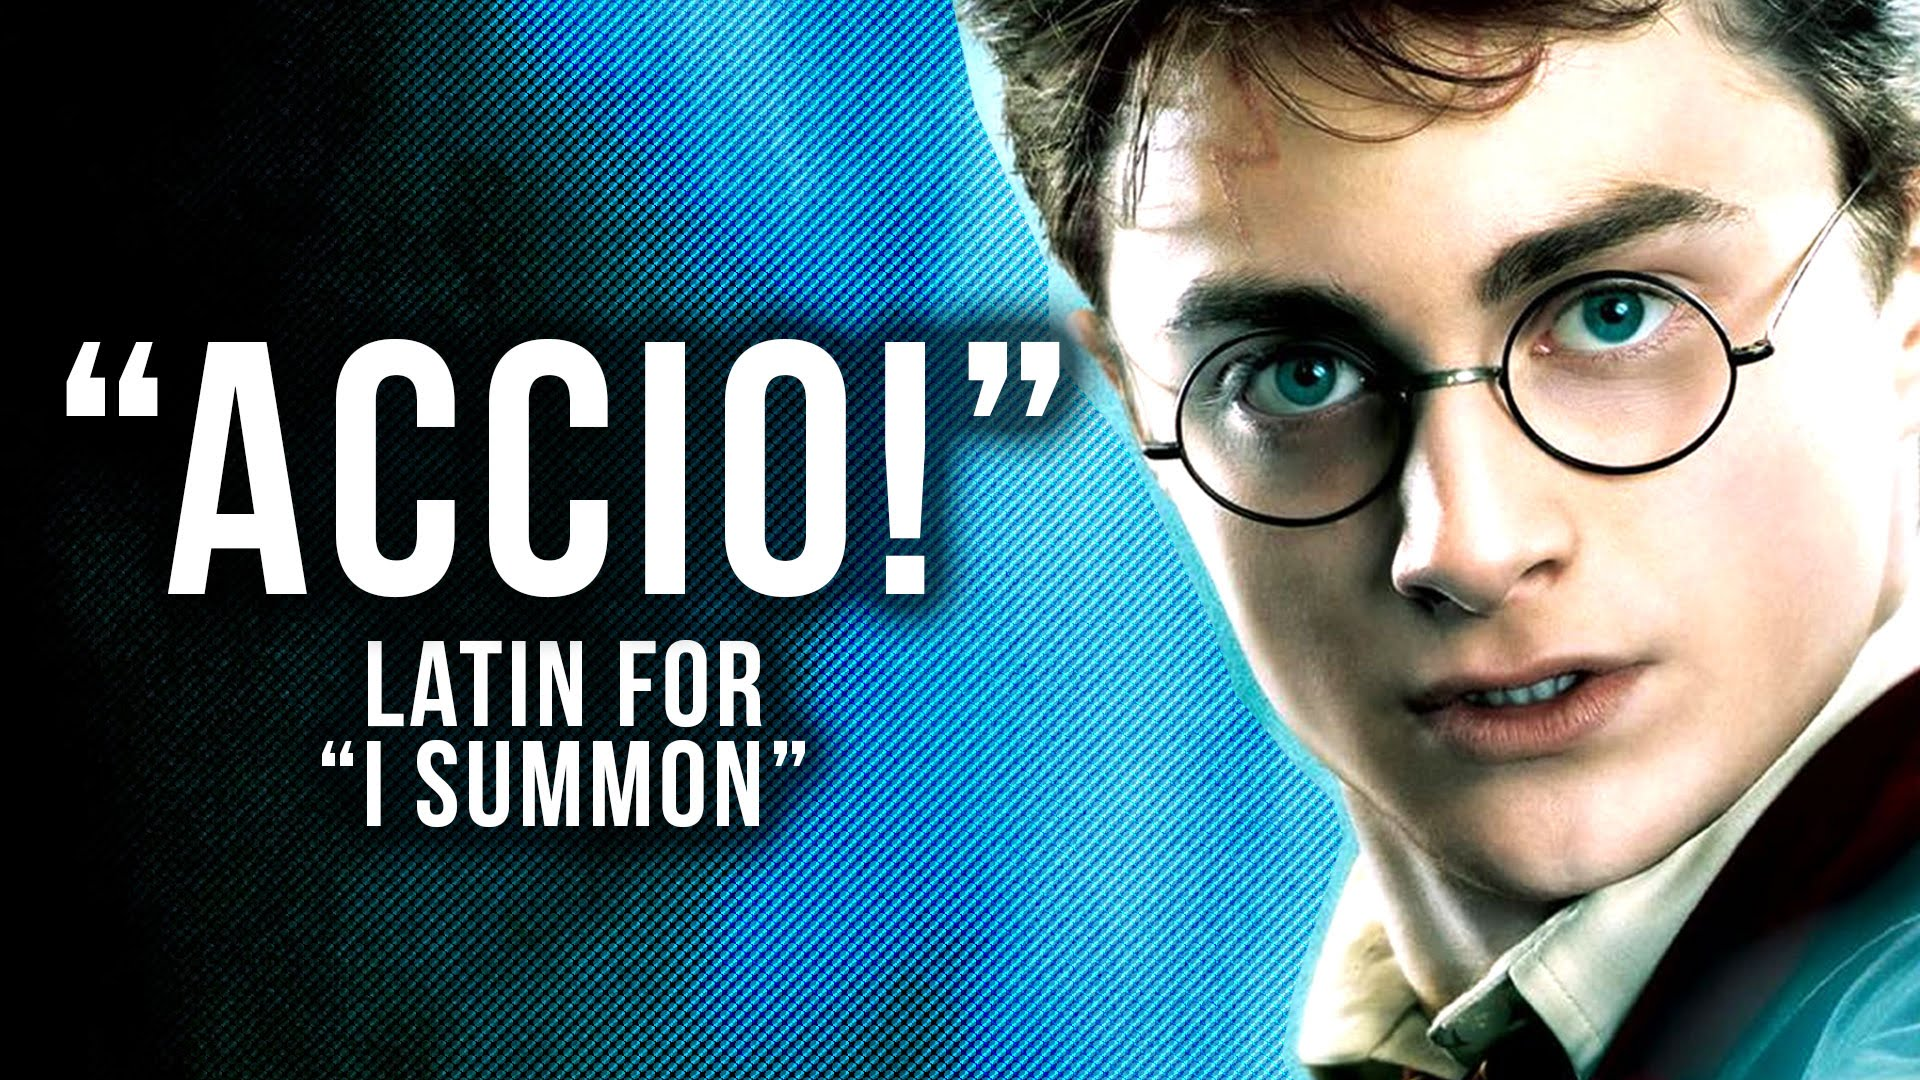 The Real Meaning Behind Spell Names Featured in the 'Harry Potter' Films and Fantasy Novels by J. K. Rowling